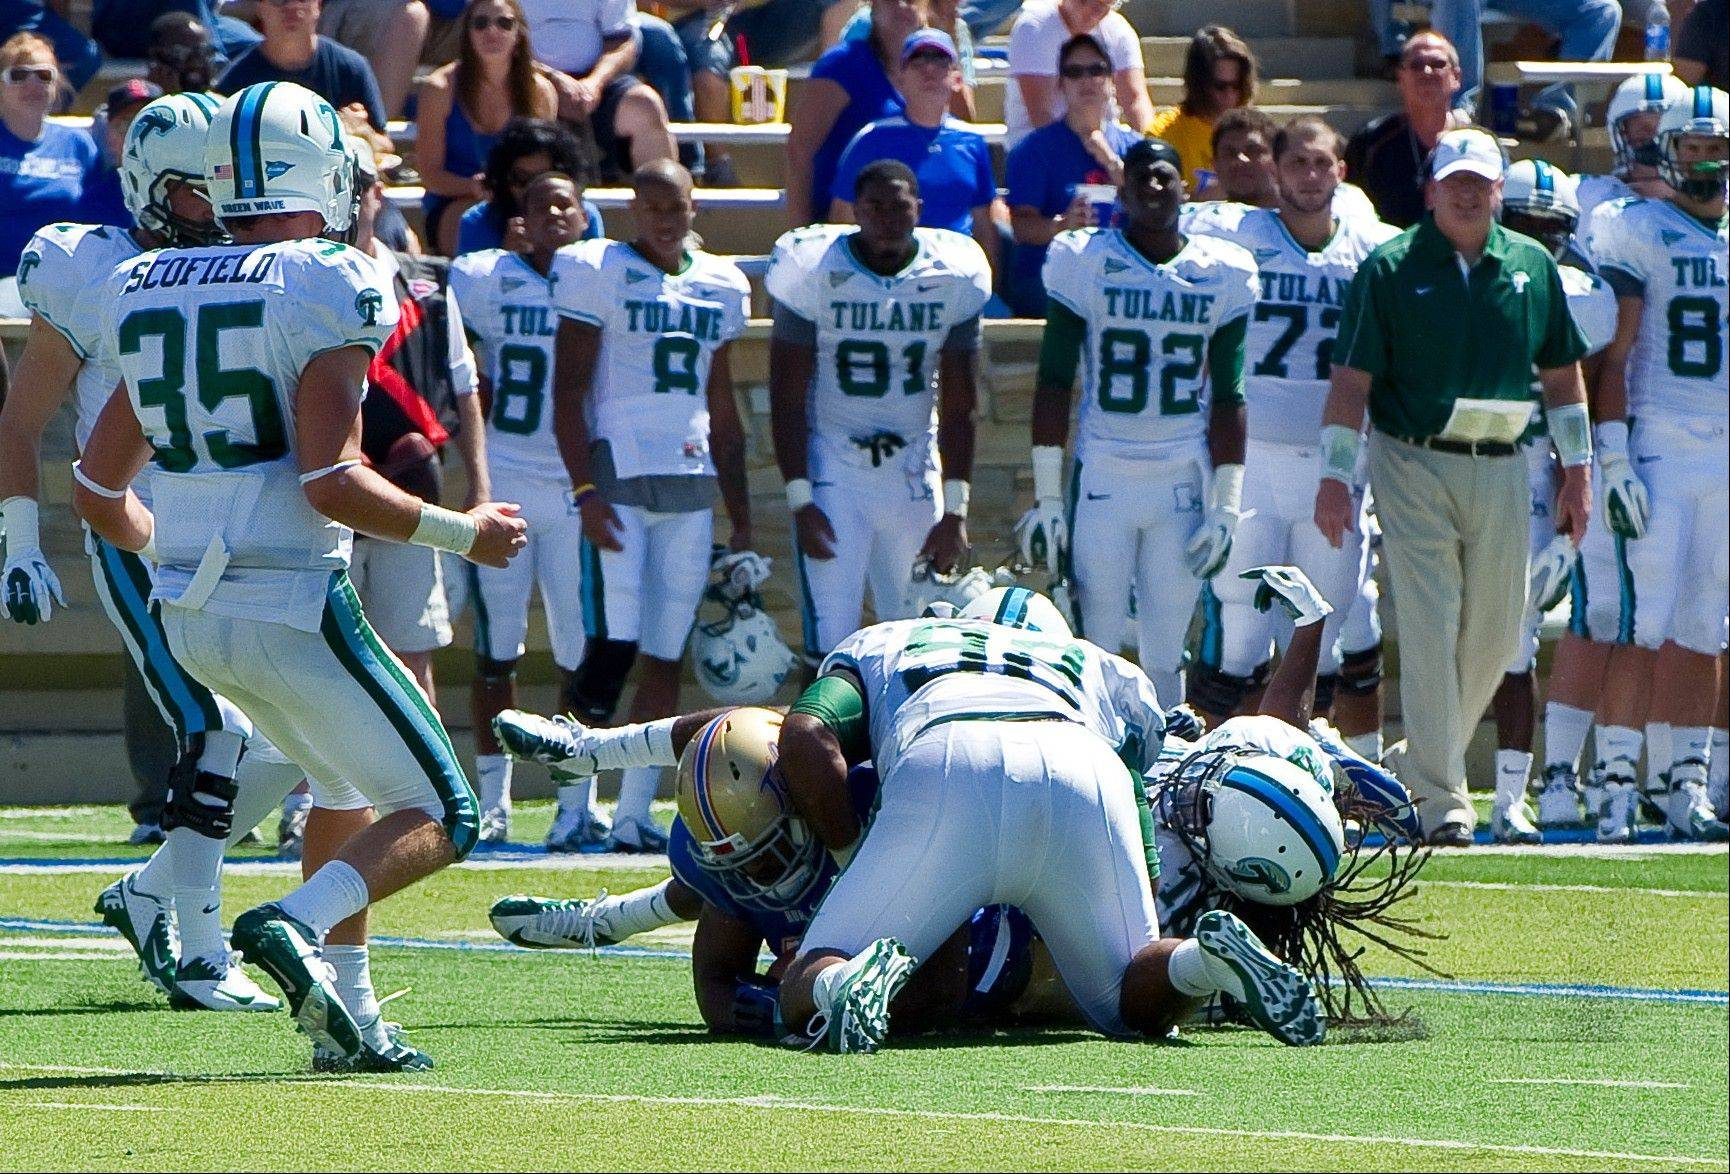 Tulane's Devon Walker (18), right, and Julius Warmsley (92) tackle Tulsa's Kenny Welcome, bottom left, during Saturday's game in Tulsa, Okla. Walker was seriously hurt on this play.